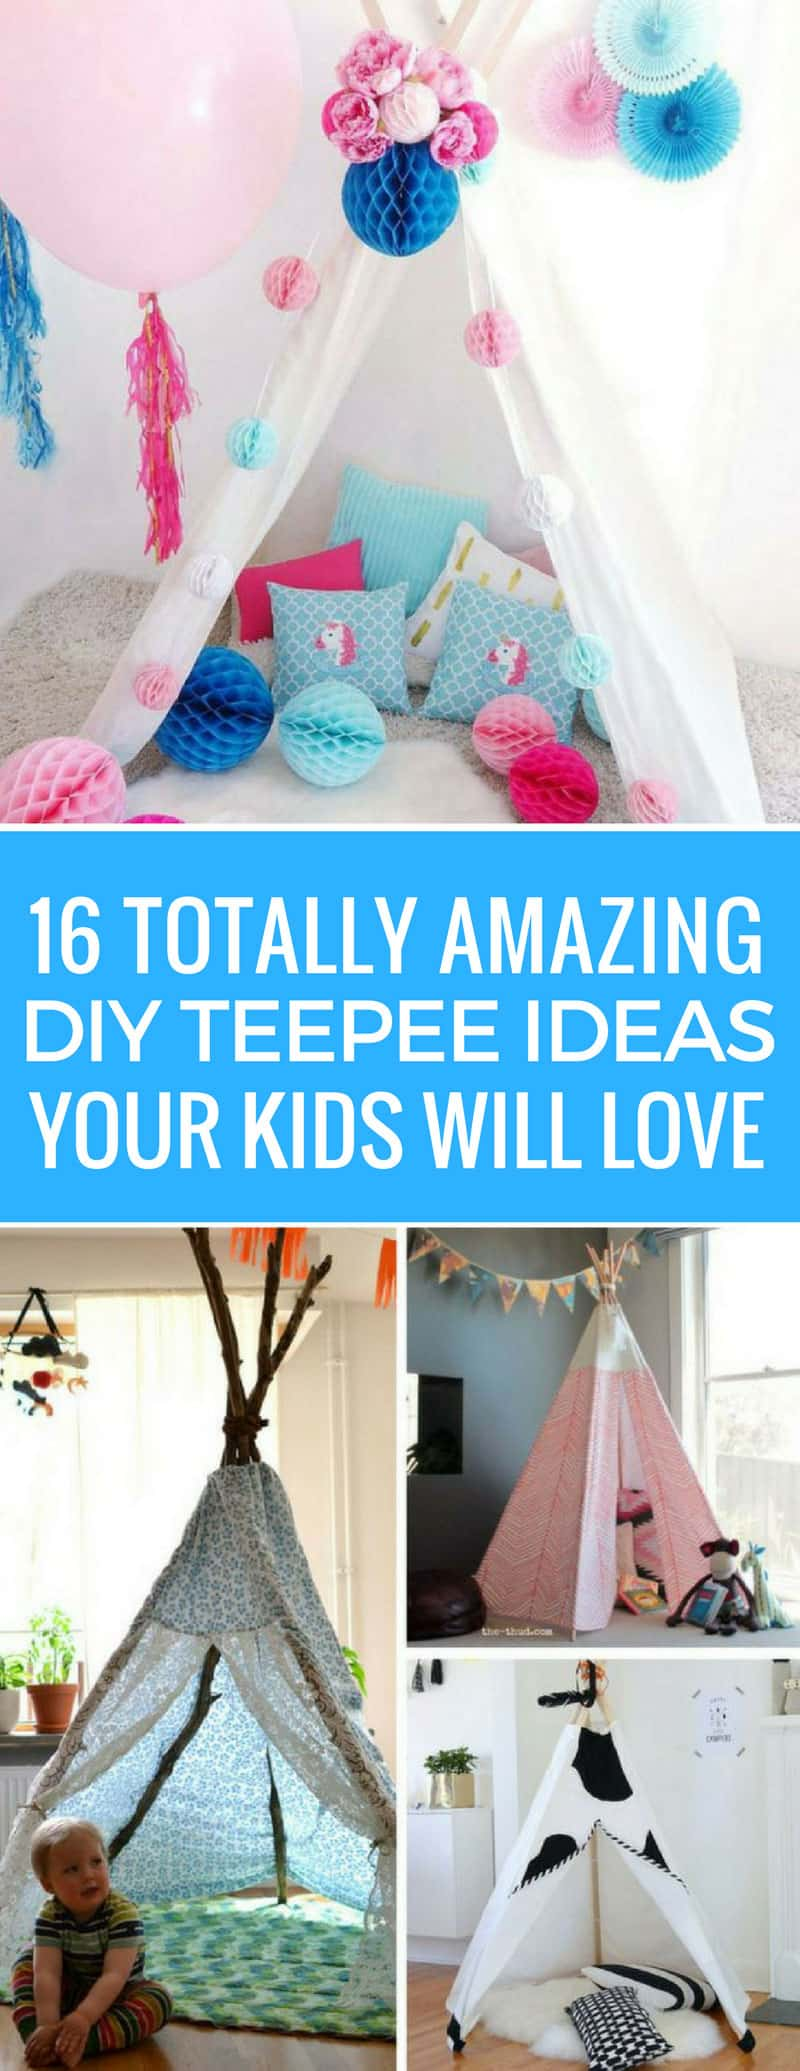 These DIY teepee ideas are brilliant!! The kids have been asking for one and now I can make it! Thanks for sharing!